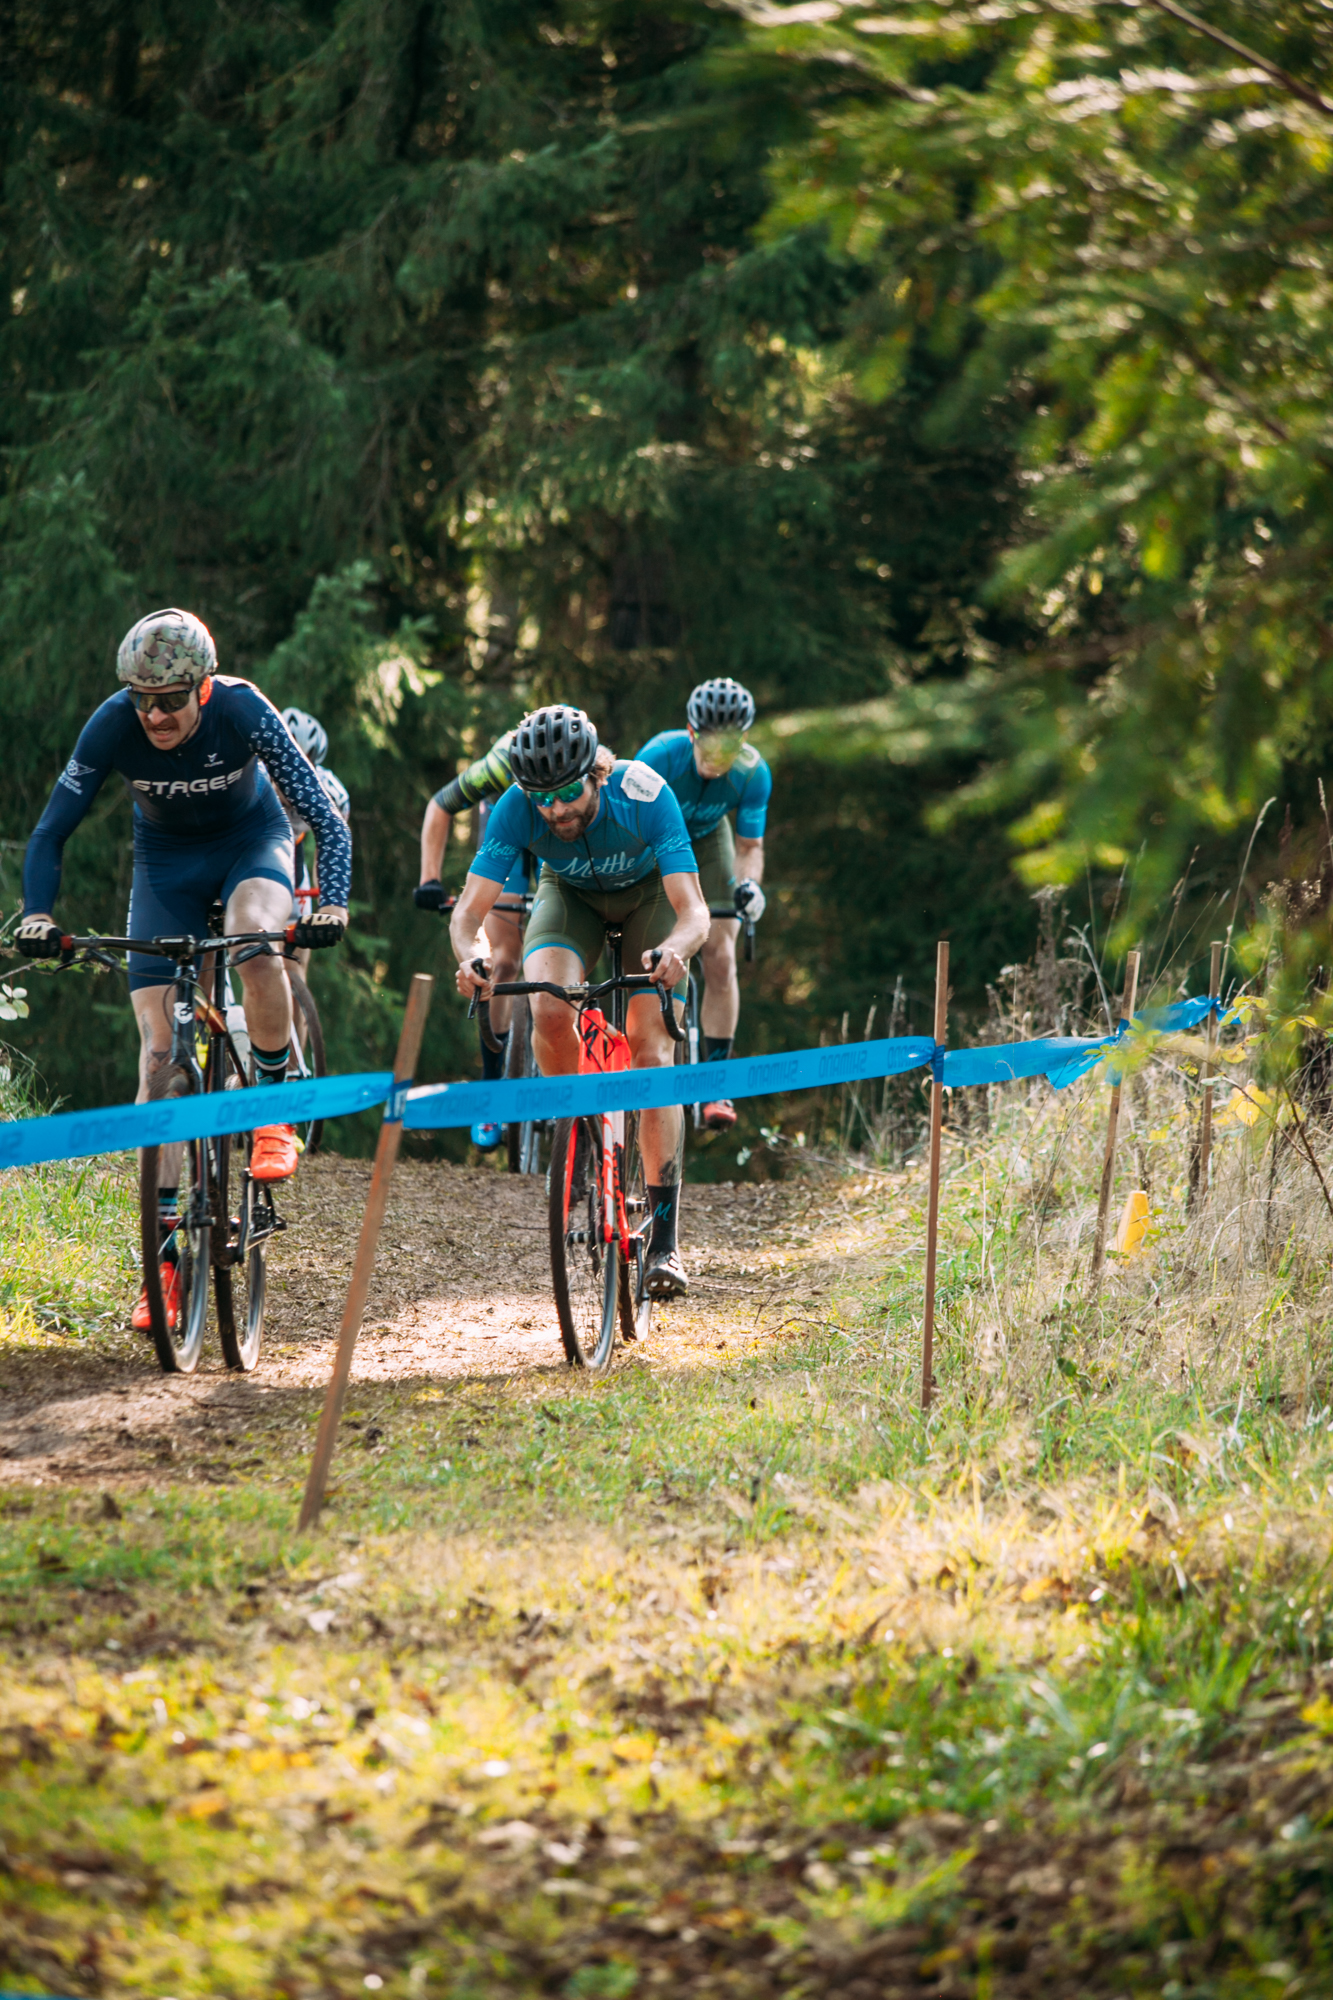 Cyclocross18_CCCX_RainierHS-145-mettlecycling.jpg